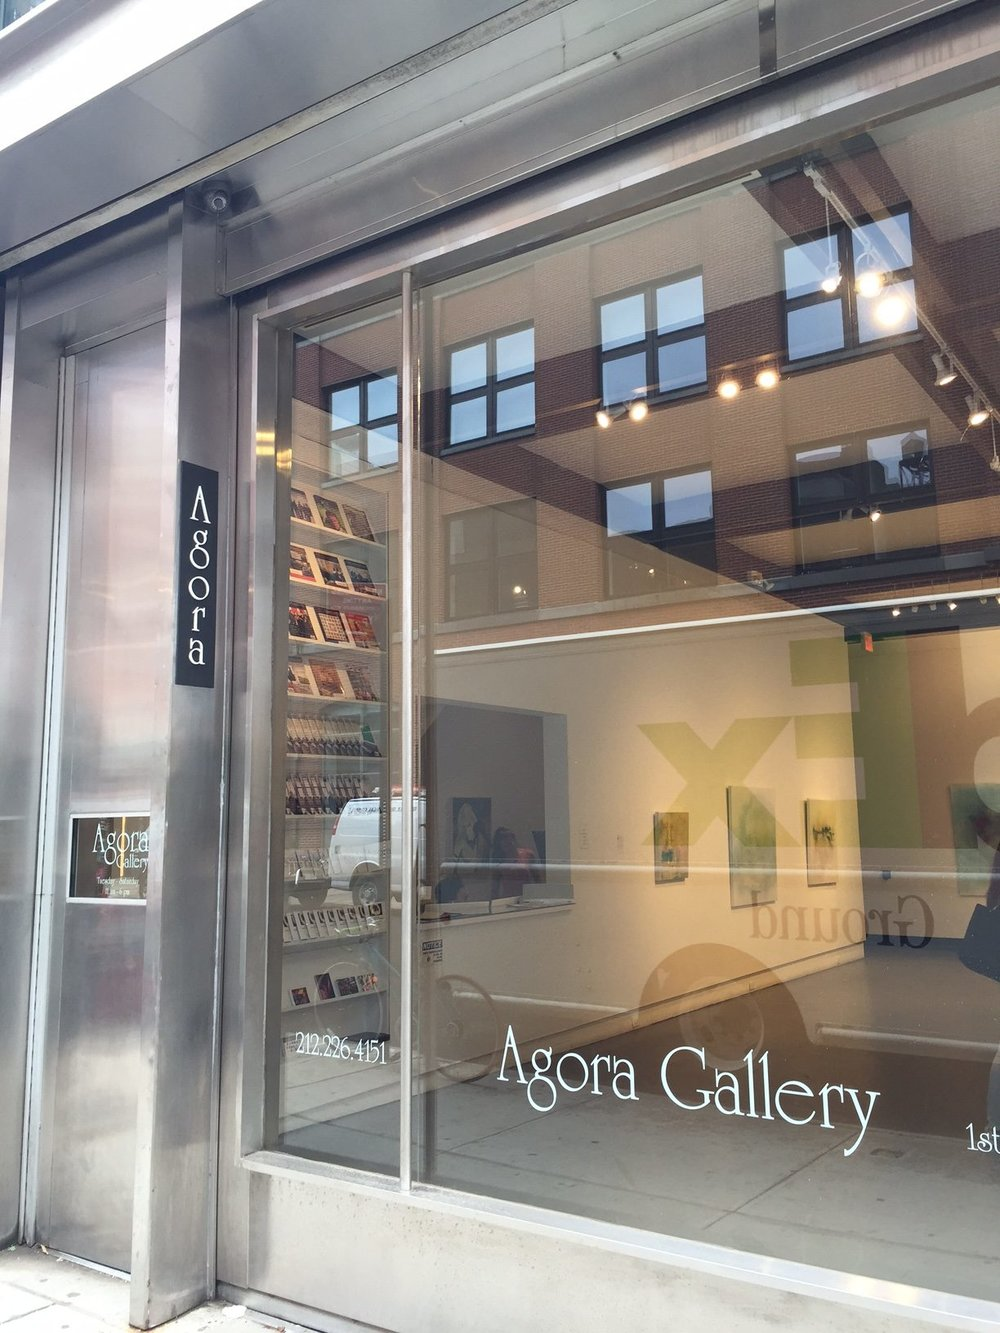 Agora Gallery New York 2016 1.jpg